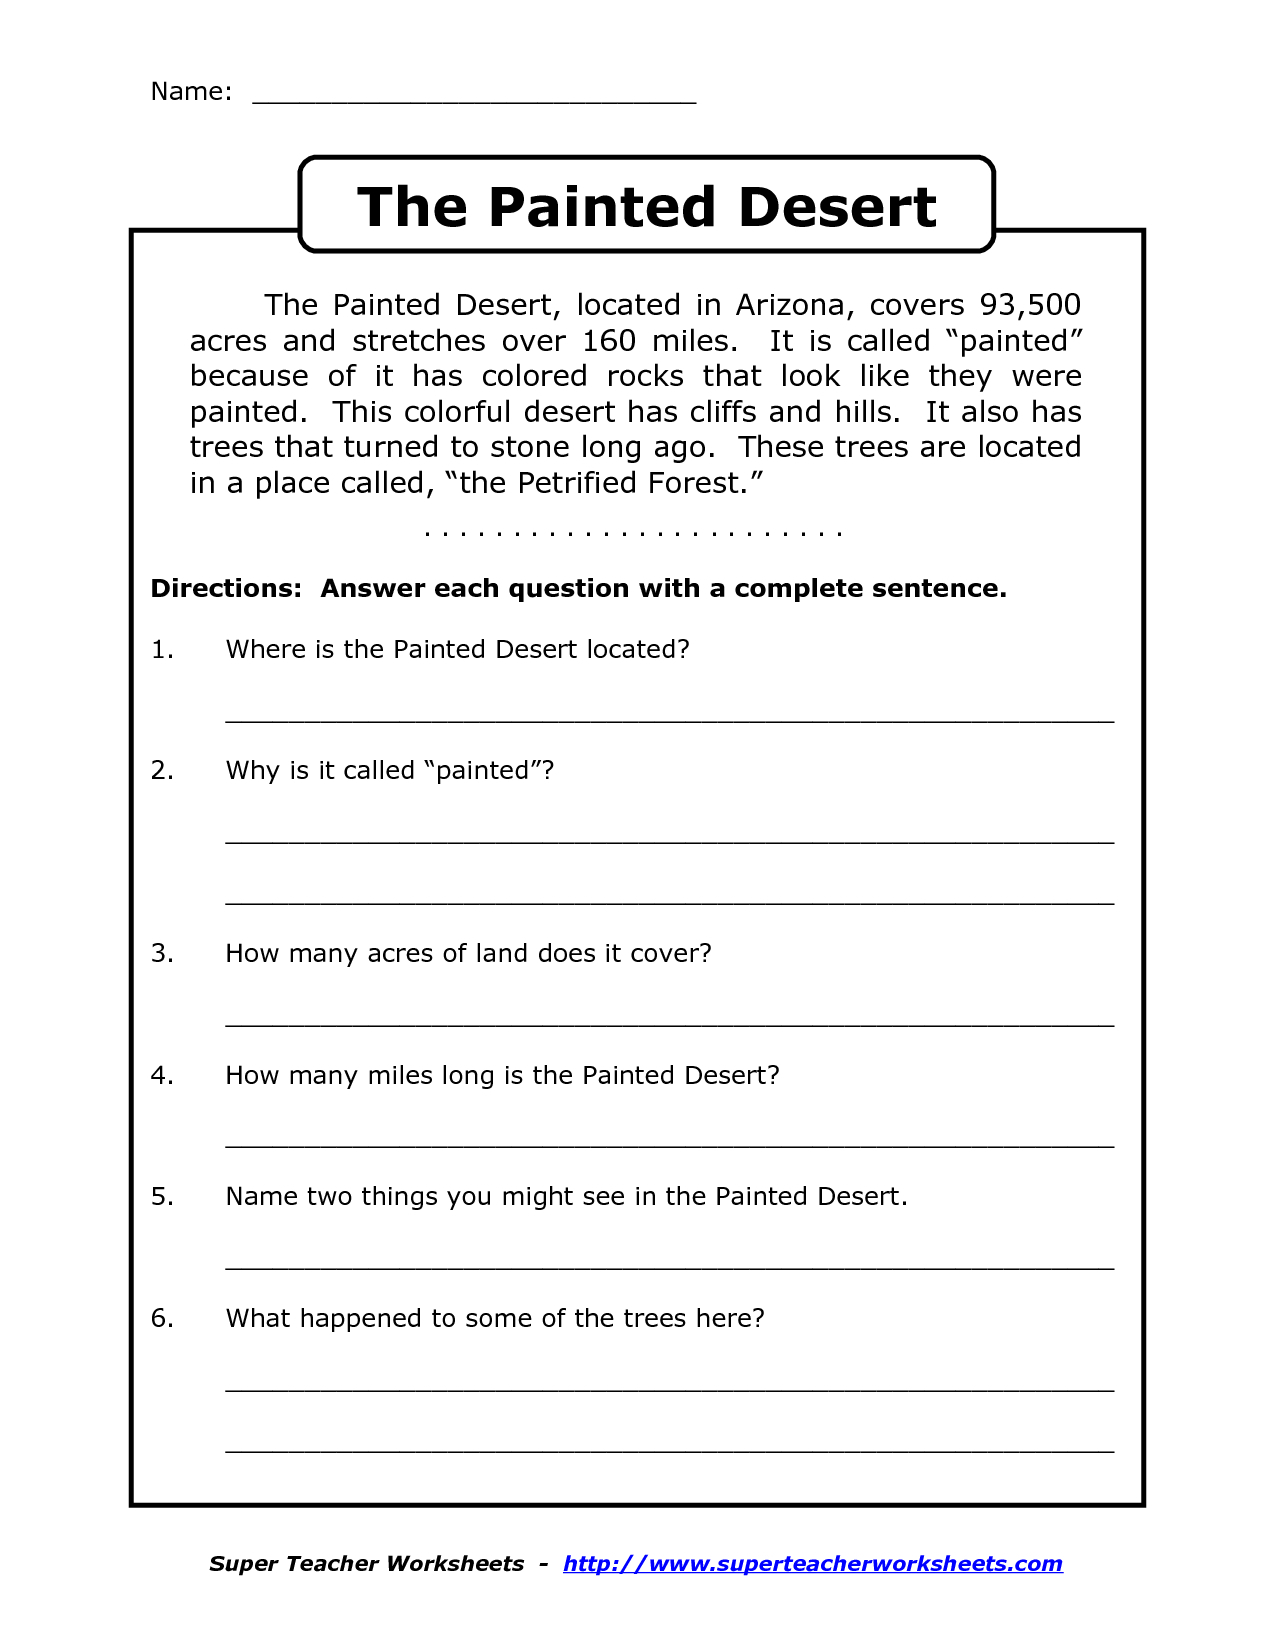 Reading Worksheets For 4Th Grade   Reading Comprehension Worksheets   Free Printable Reading Comprehension Worksheets Grade 5